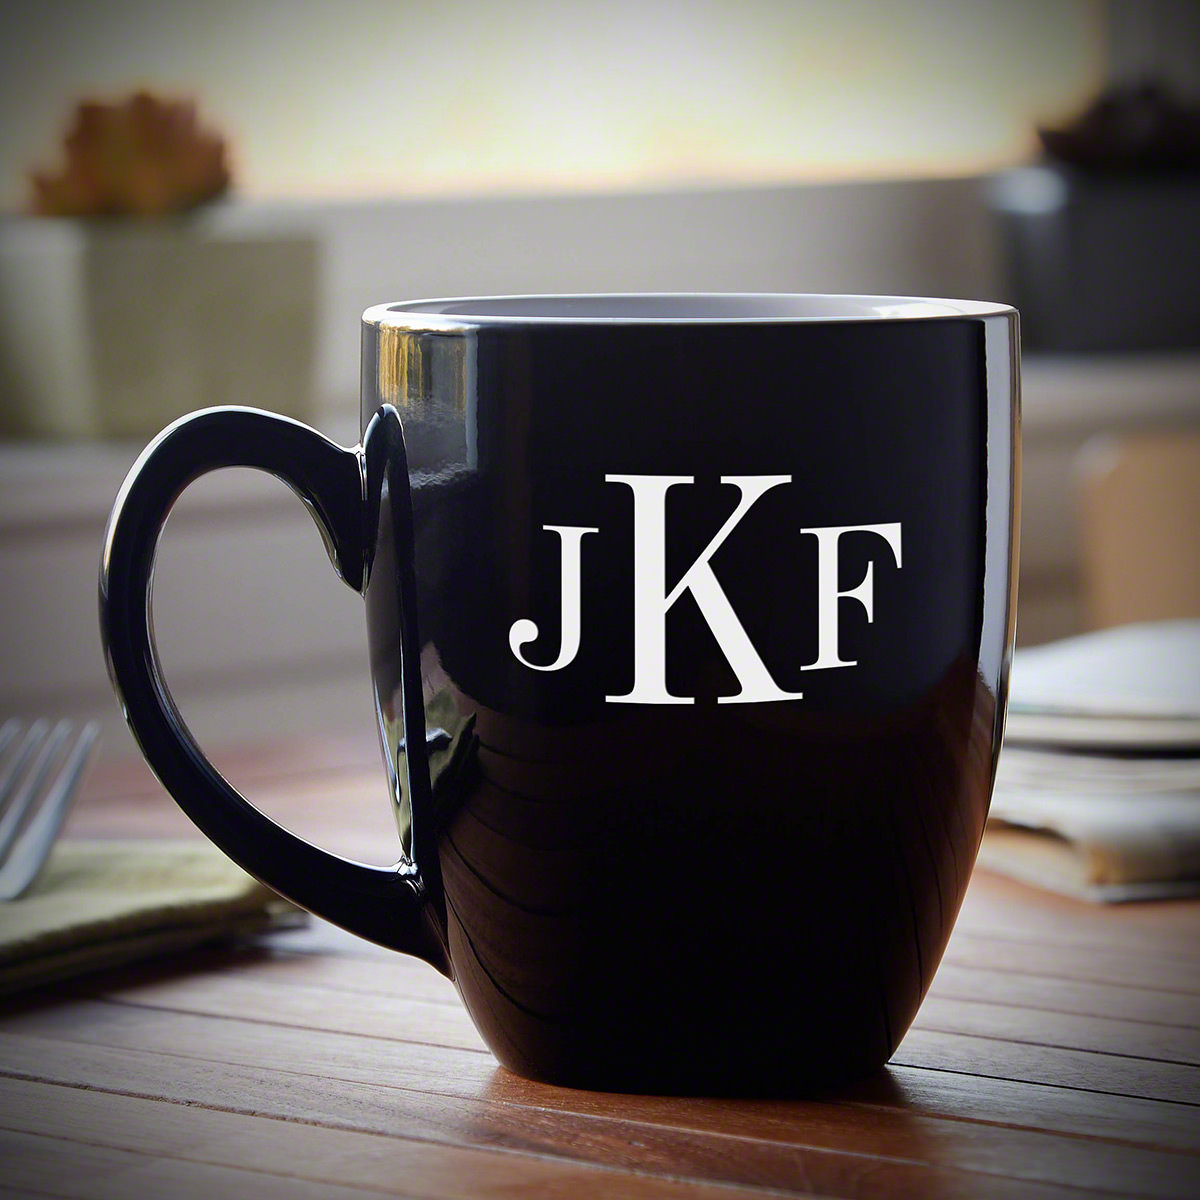 Sleek and modern, made from quality ceramic, this Classic Monogram personalized coffee mug is a first-class gift for any occasion. Featuring a glossy black exterior, we custom engrave each one to order with up to three initials of your choice. The inside #mug